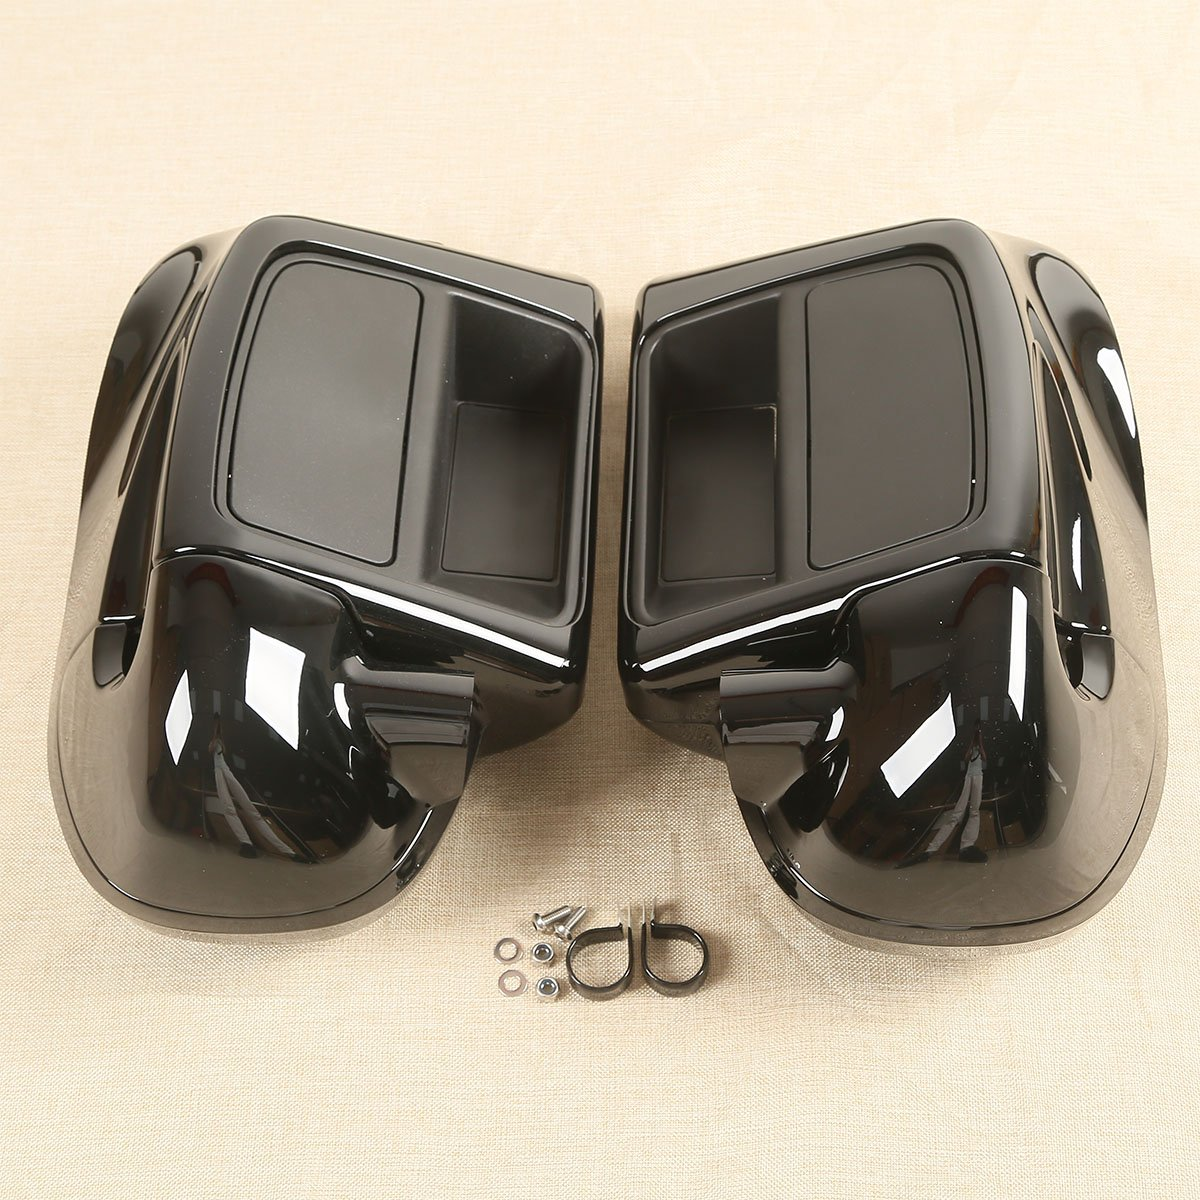 XFMT 6-1/2'' Speaker Box Pod + Lower Vented Fairing For Harley FLHT FLHX FLHR 2014-2018 17